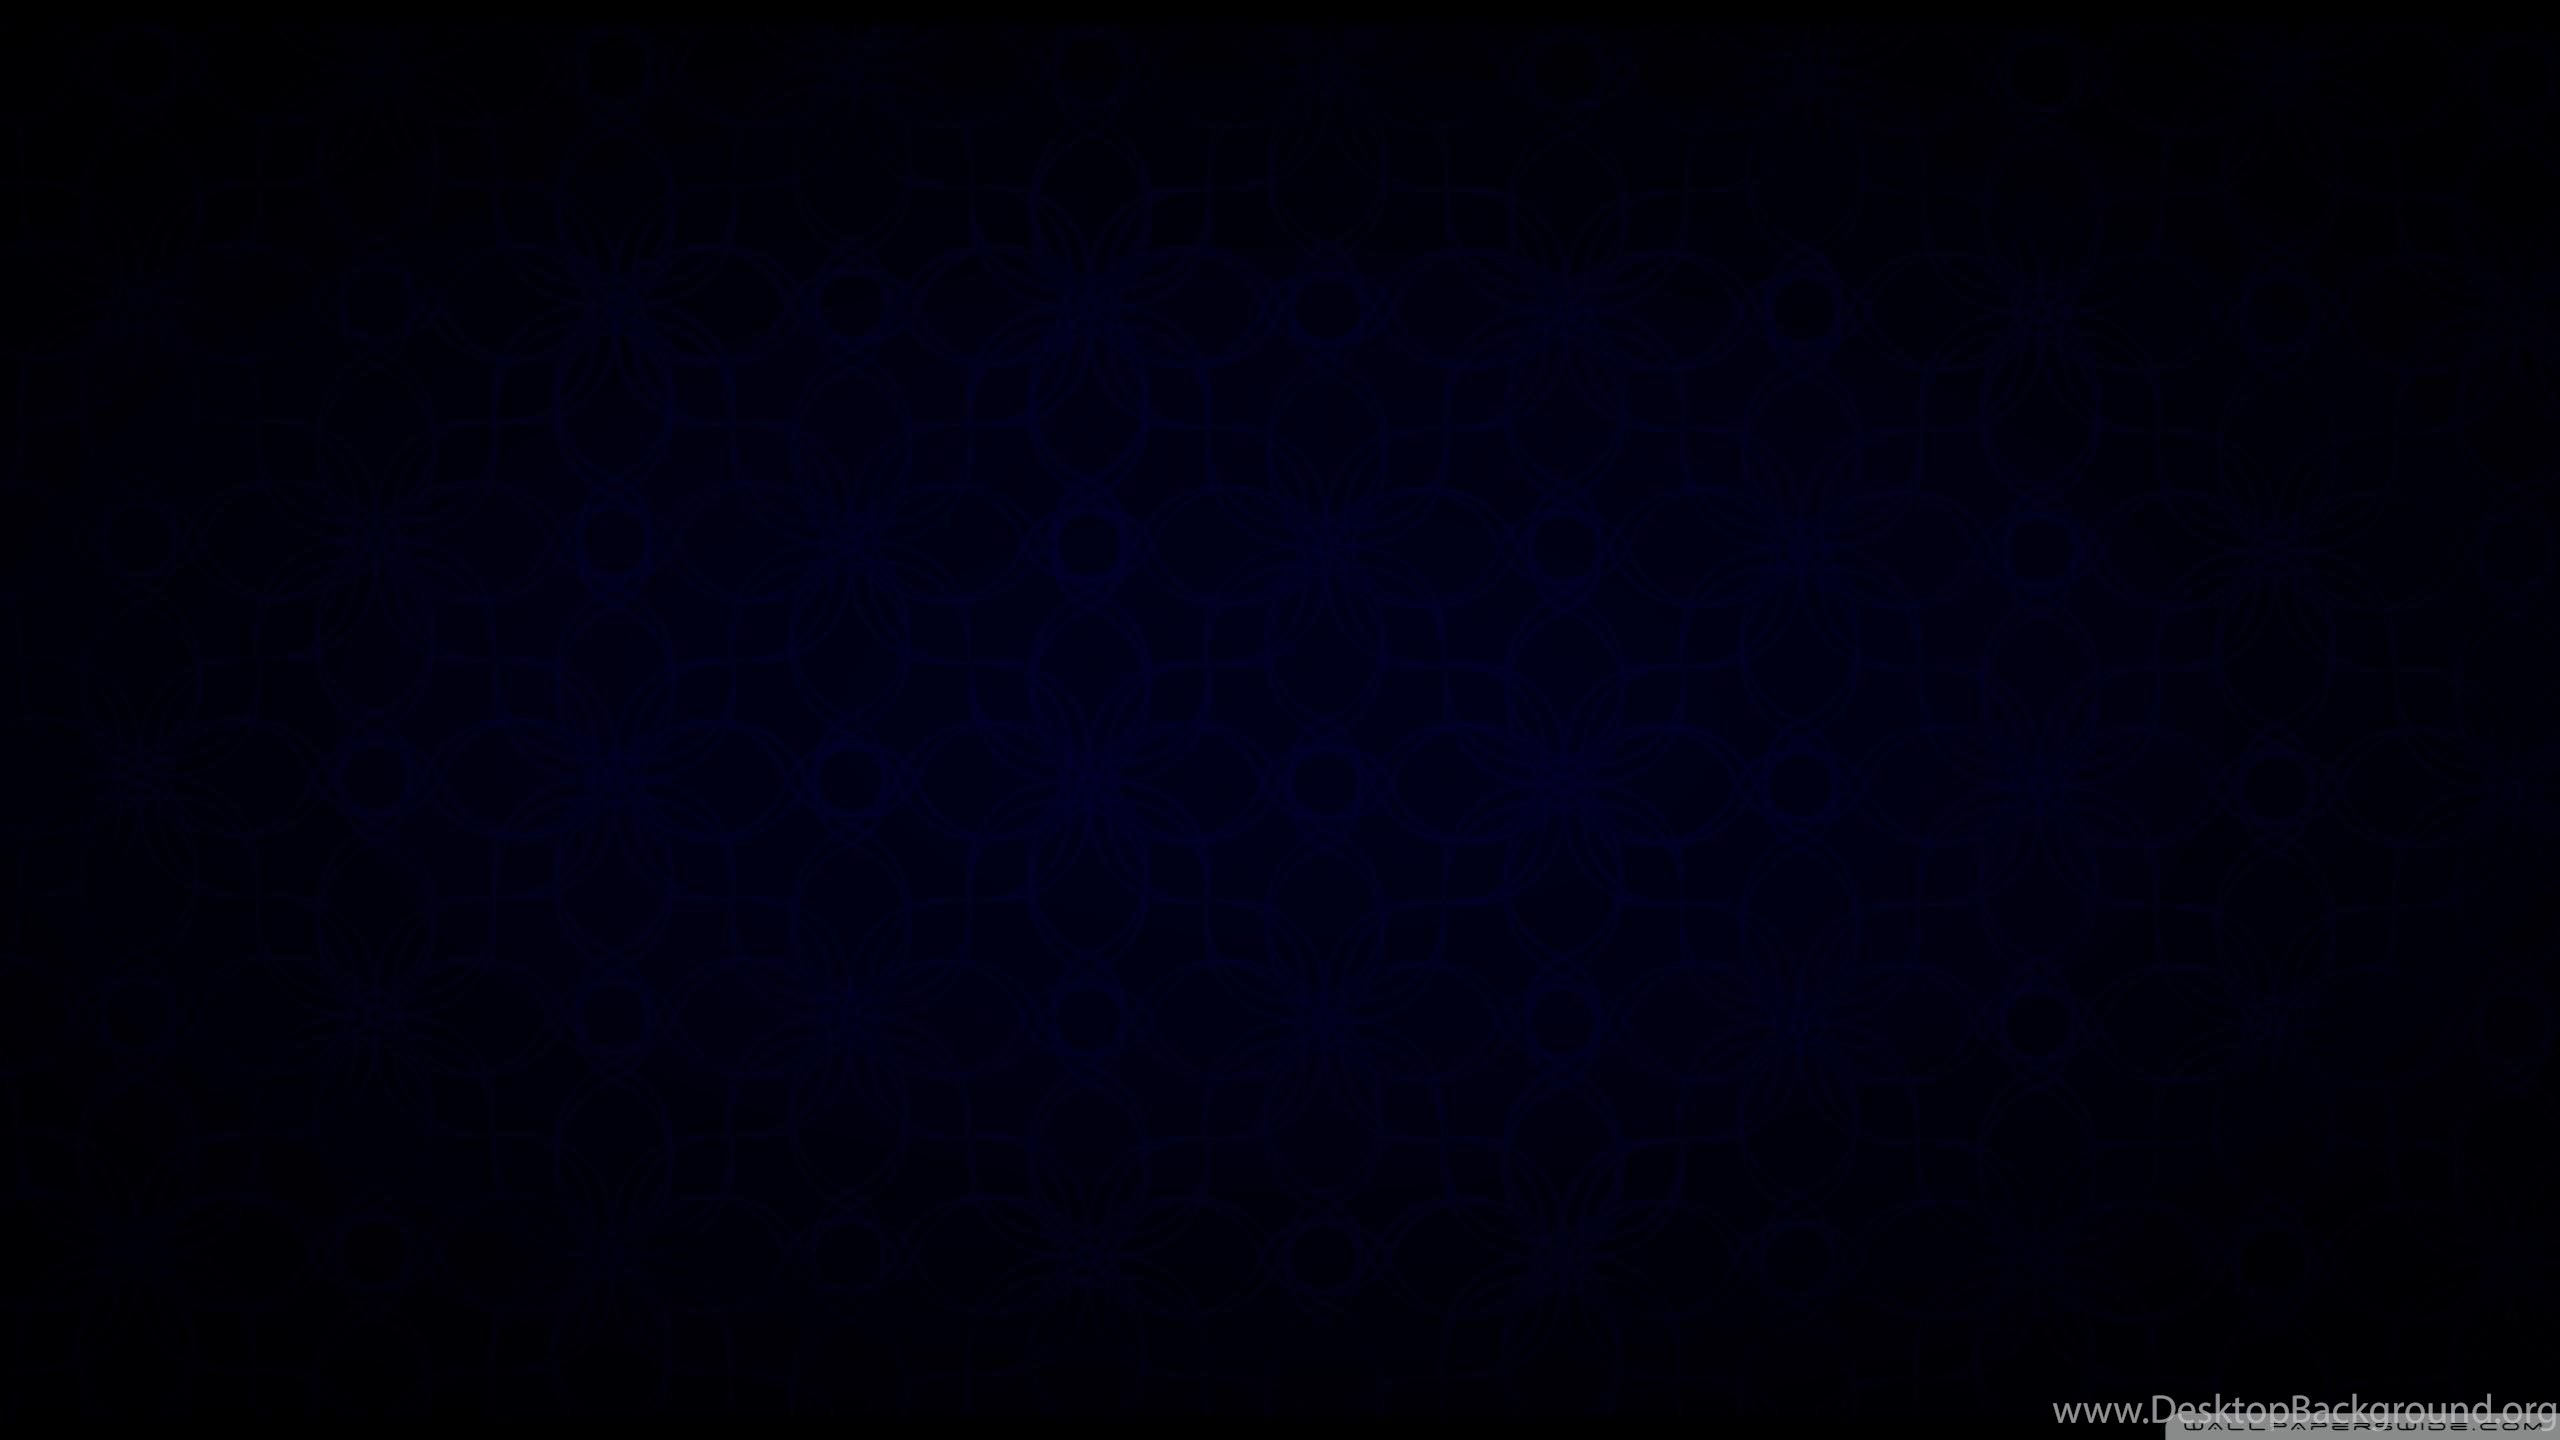 Dark Blue Vintage Pattern Black 2560x1440 Hd Wallpapers And